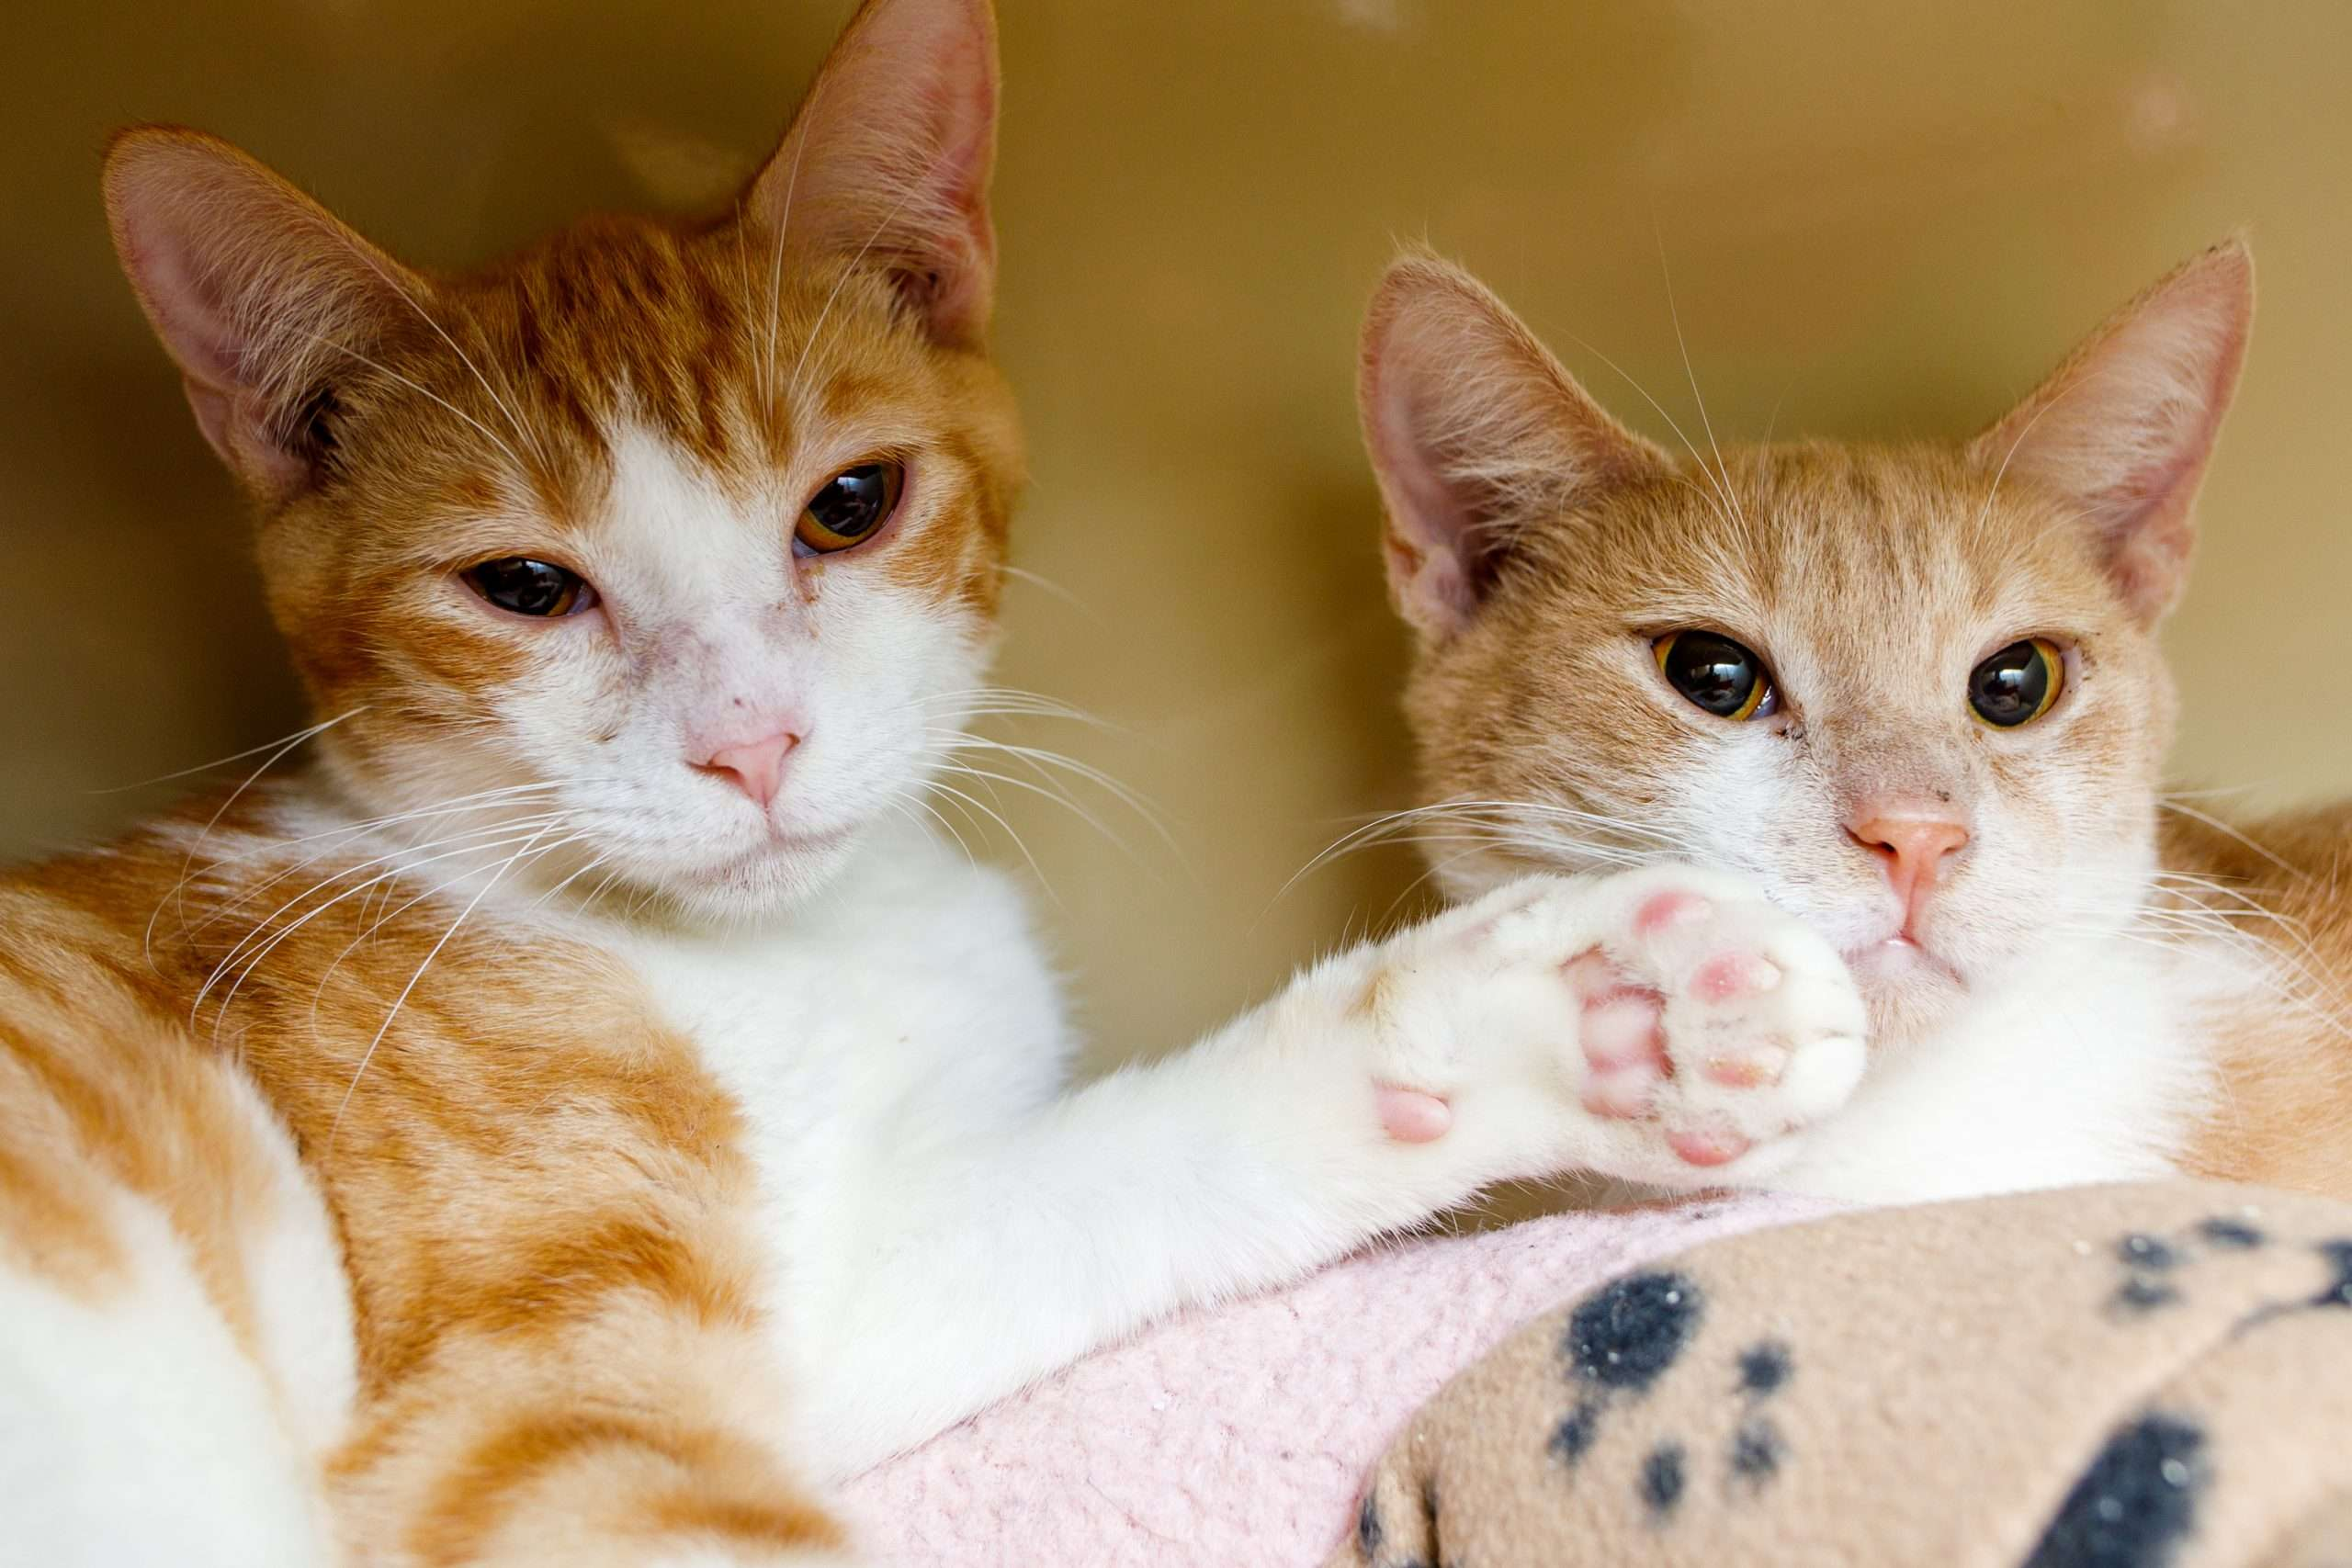 Cats for adoption near me